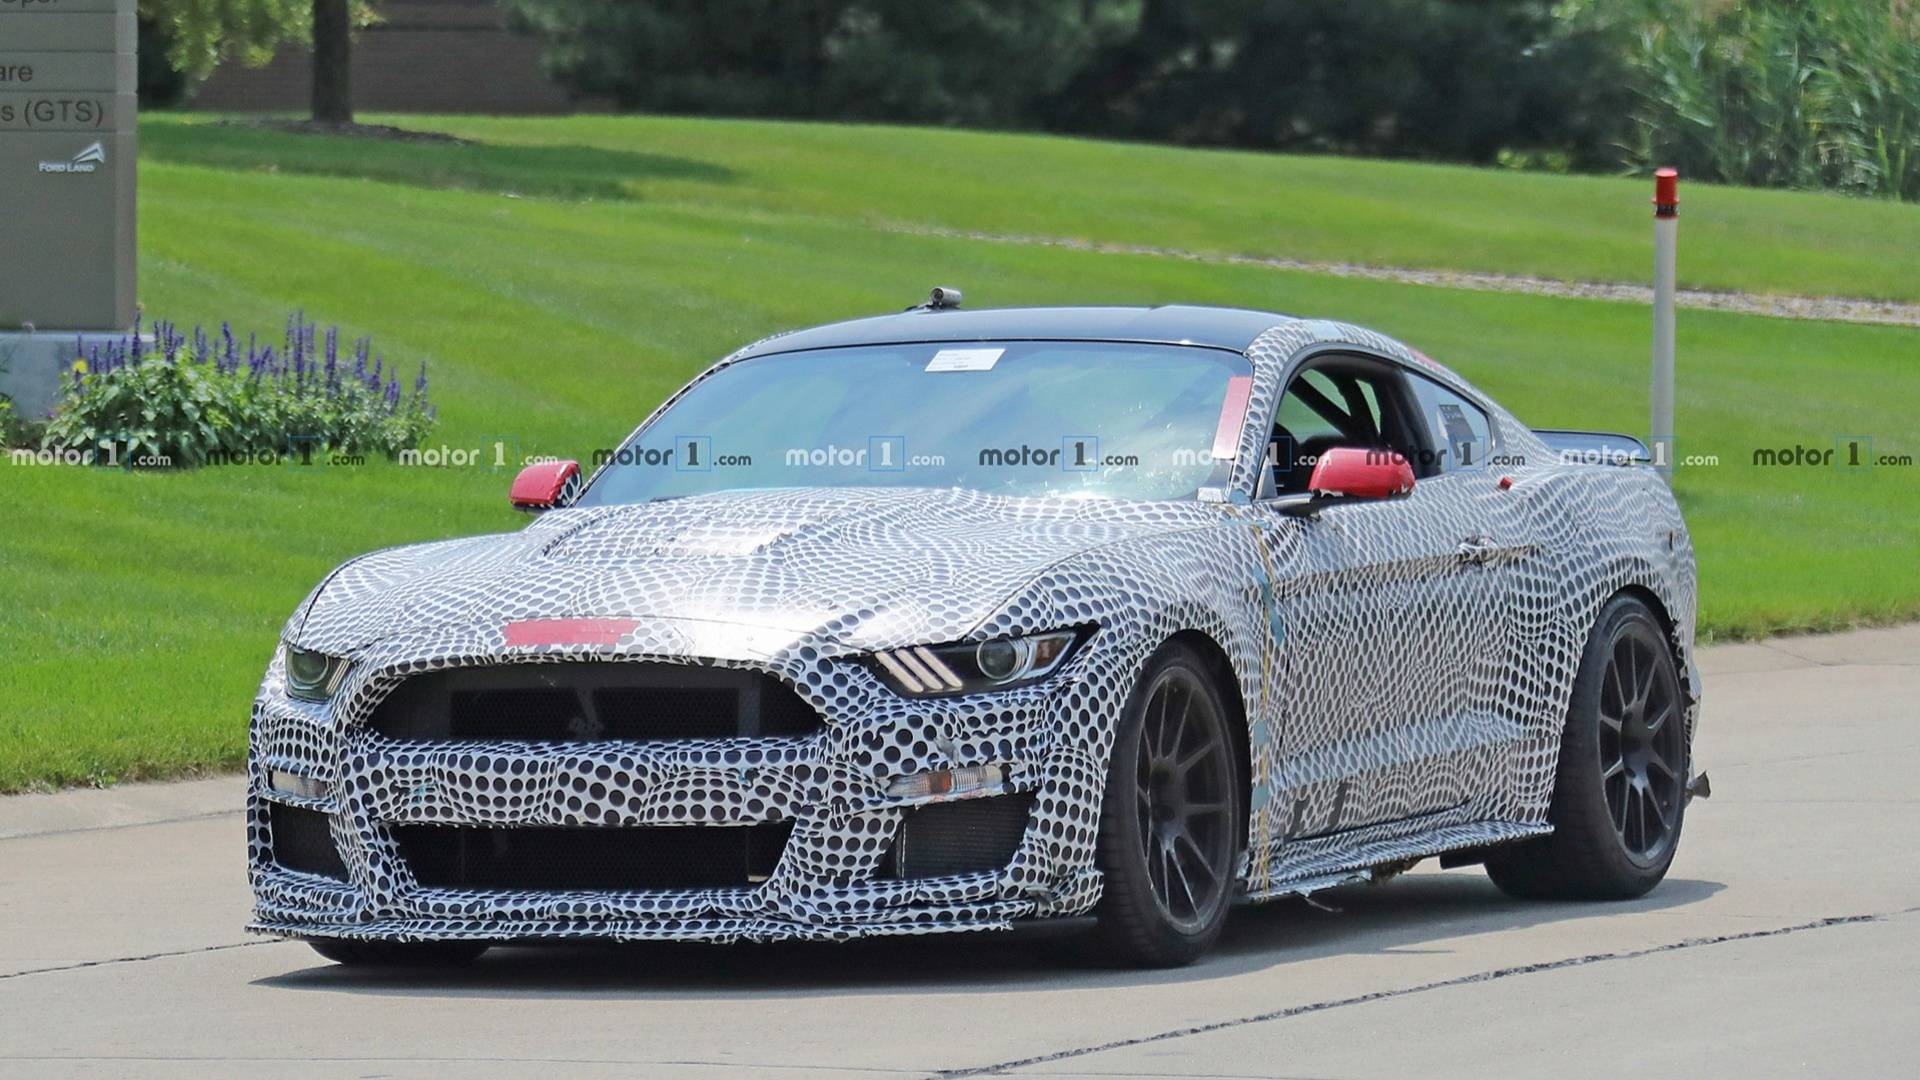 2019 Gt 500 >> 2019 Mustang Shelby Gt500 Spied With Track Pack Spoiler Vir Sticker